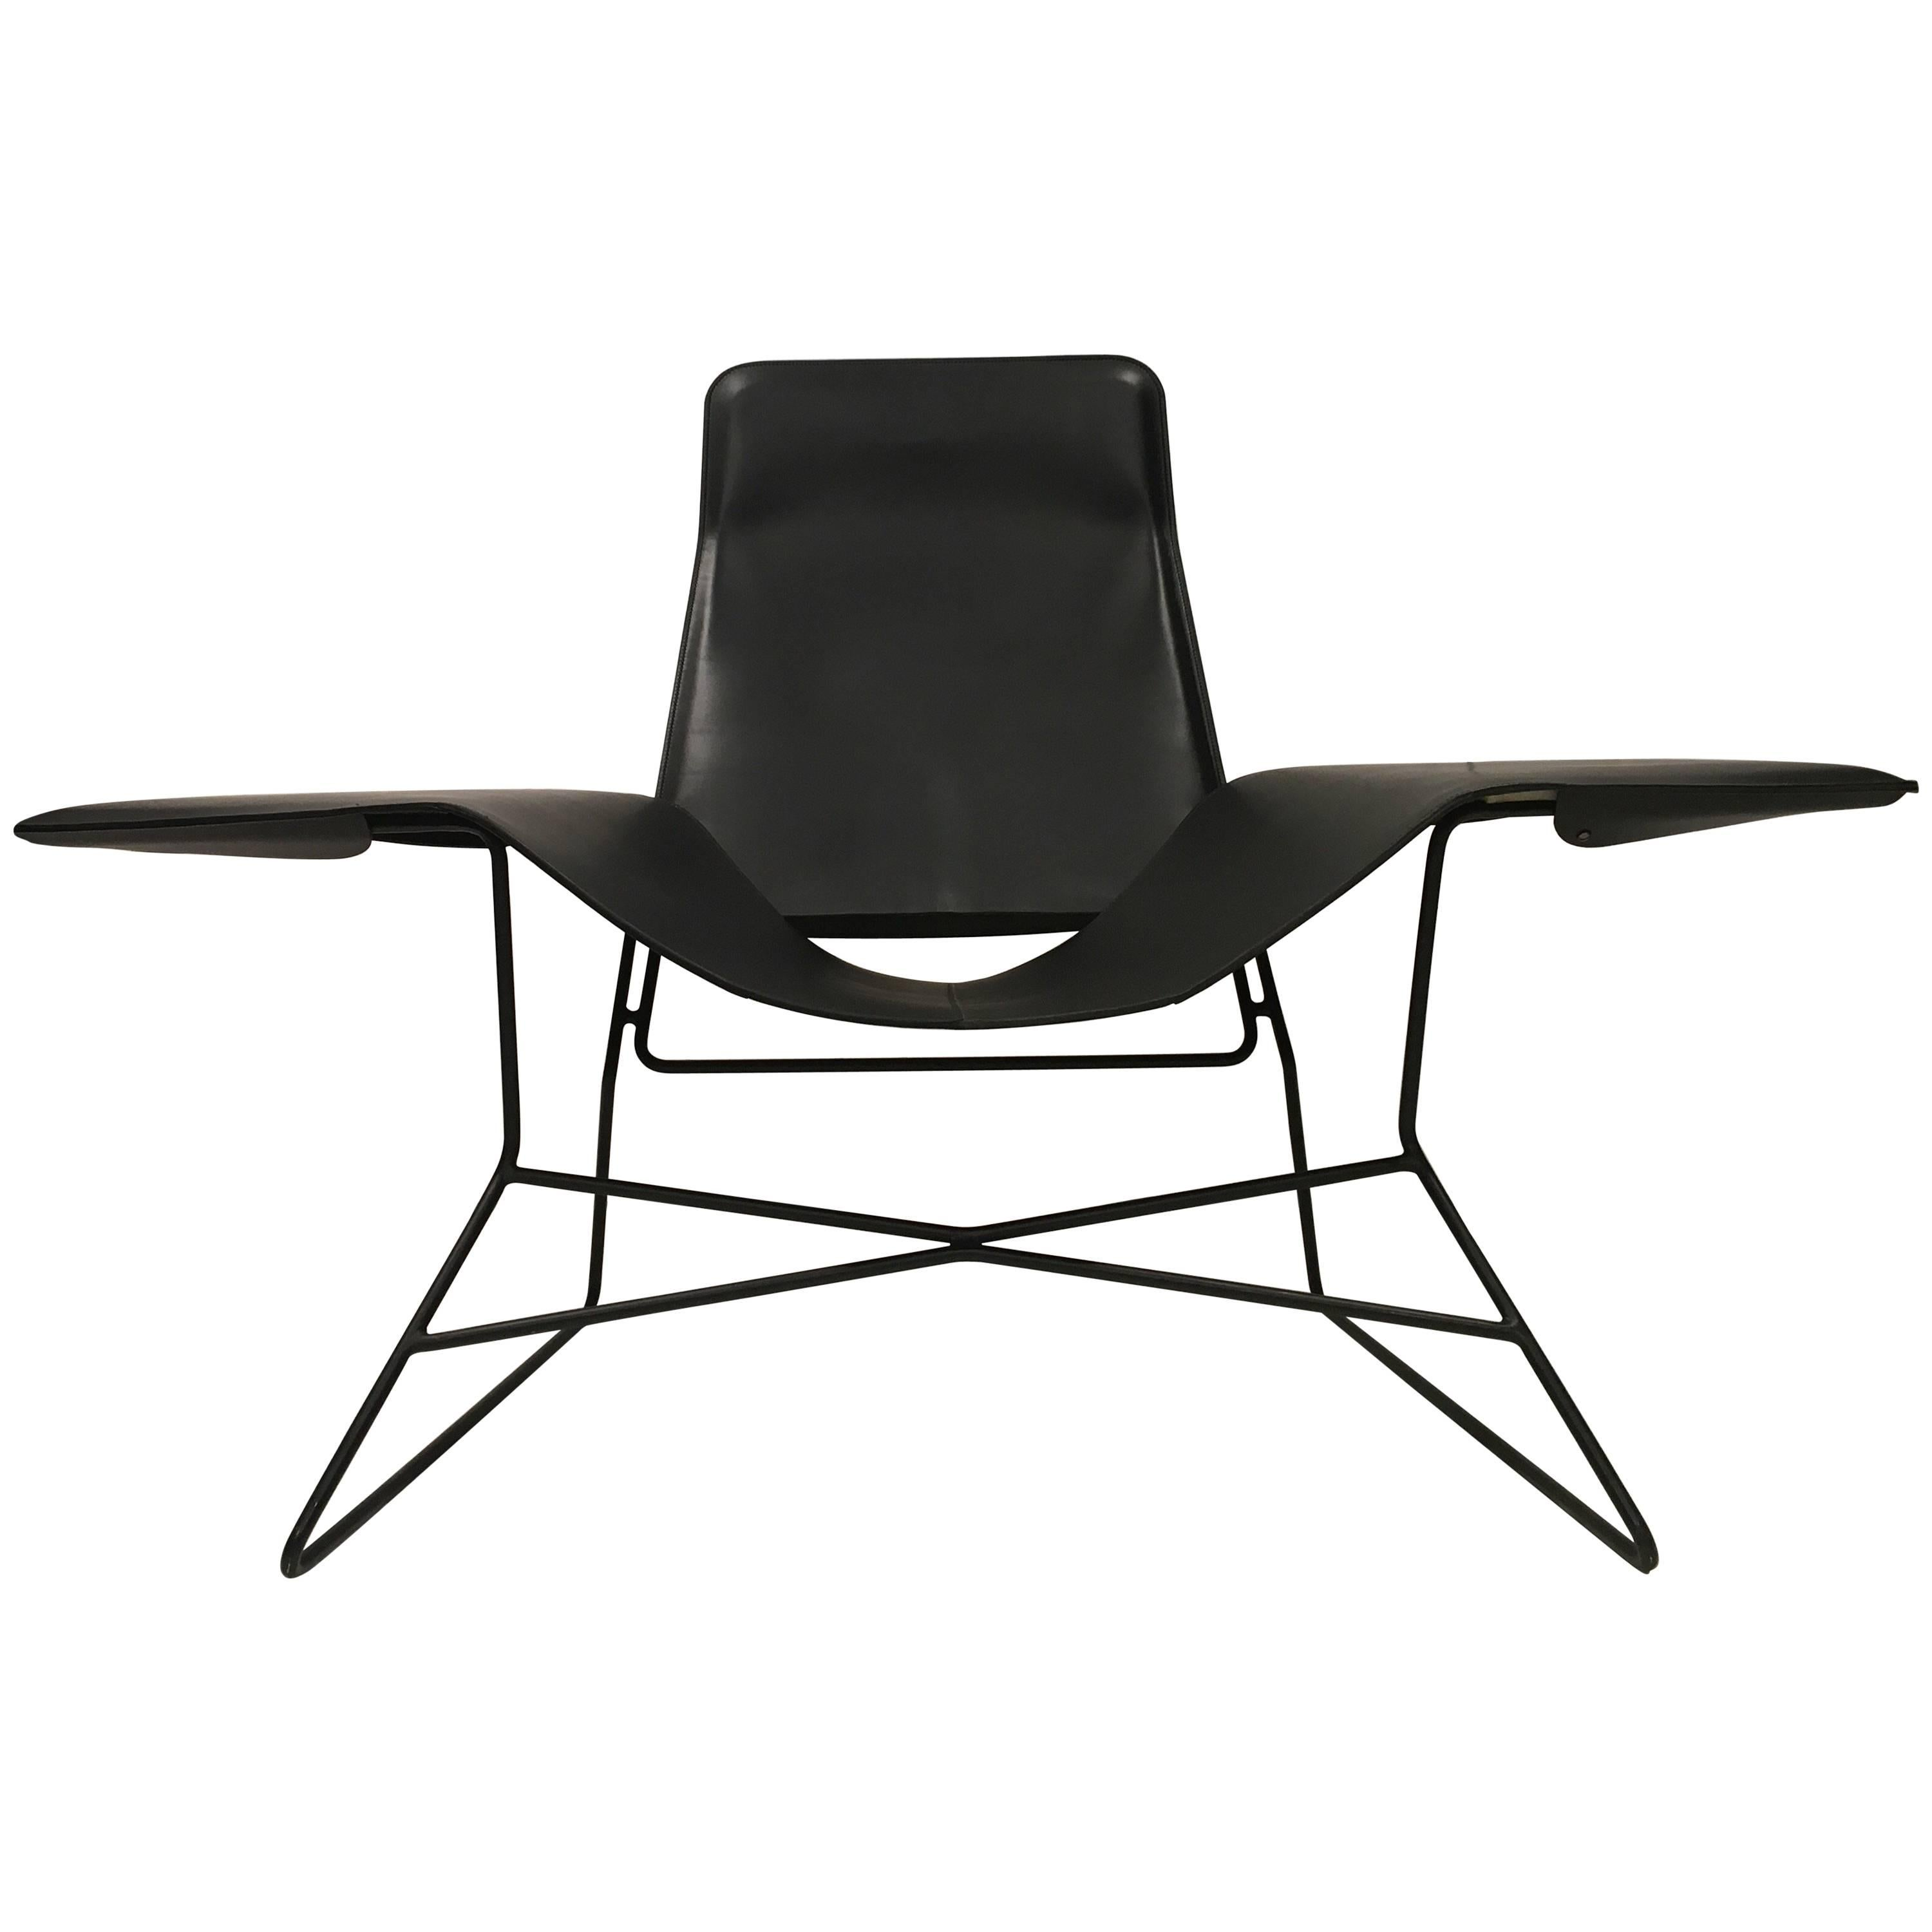 Love Chair Black Modern Lounge Chair For Sale  sc 1 st  1stDibs & Love Chair Black Modern Lounge Chair For Sale at 1stdibs